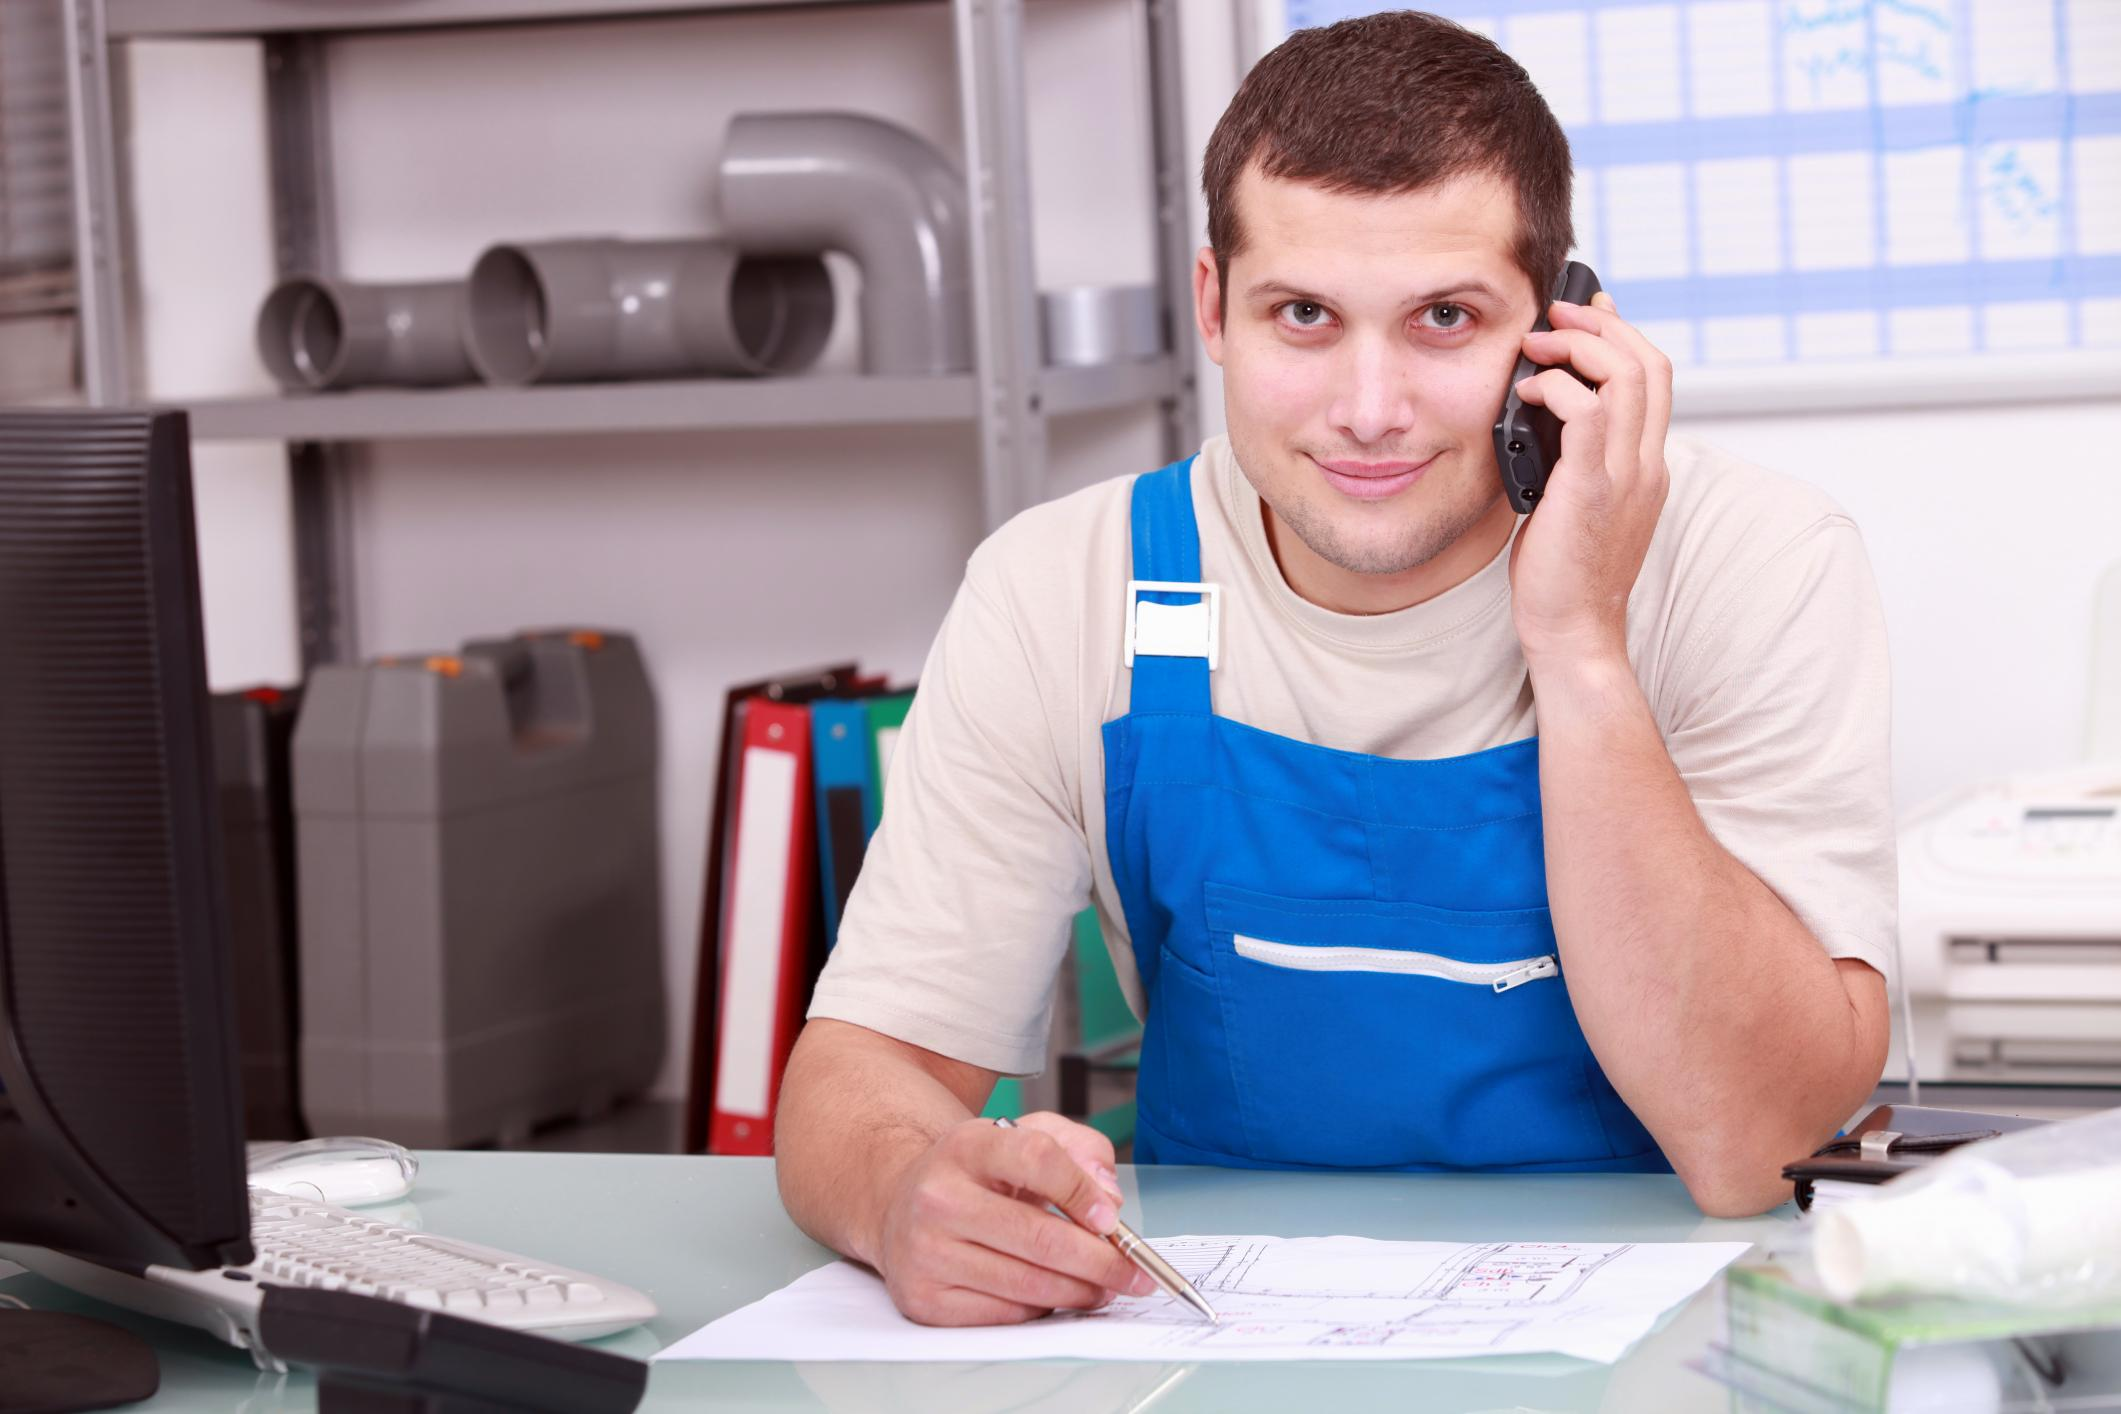 Contact Us at Sudbury Plumbing, Heating and Cooling Services